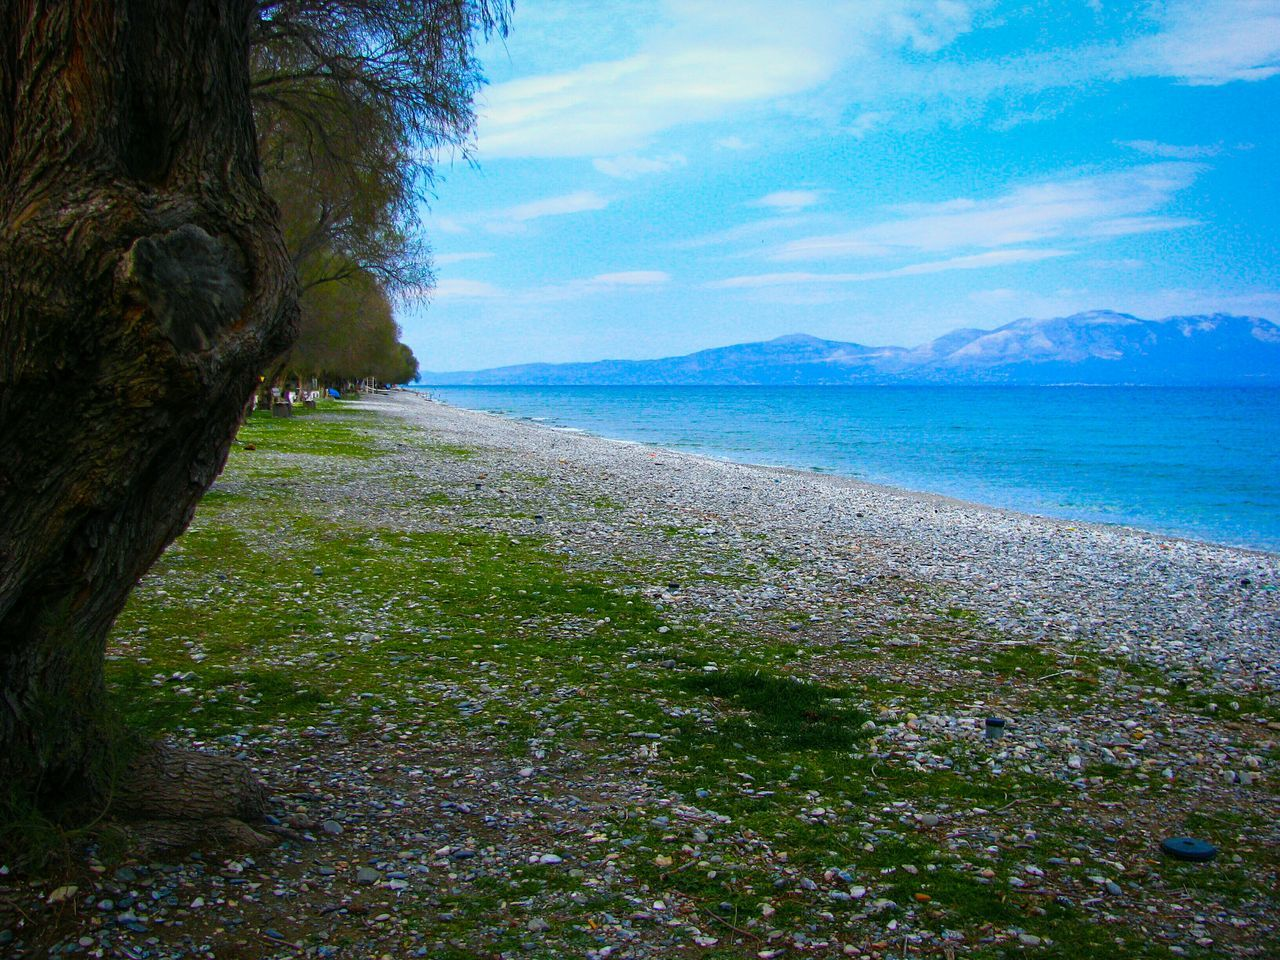 Beach Beach Photography Pebbles Pebble Beach Greece Landscapes Landscape Seascape The Secret Spaces Tranquility Scenics Water Beauty In Nature Outdoors Nature Sea Tree Sky Blue Sea Shades Of Blue Long Goodbye Mountain Mountain And Sea Lonely Beach Art Is Everywhere TCPM The Great Outdoors - 2017 EyeEm Awards Live For The Story